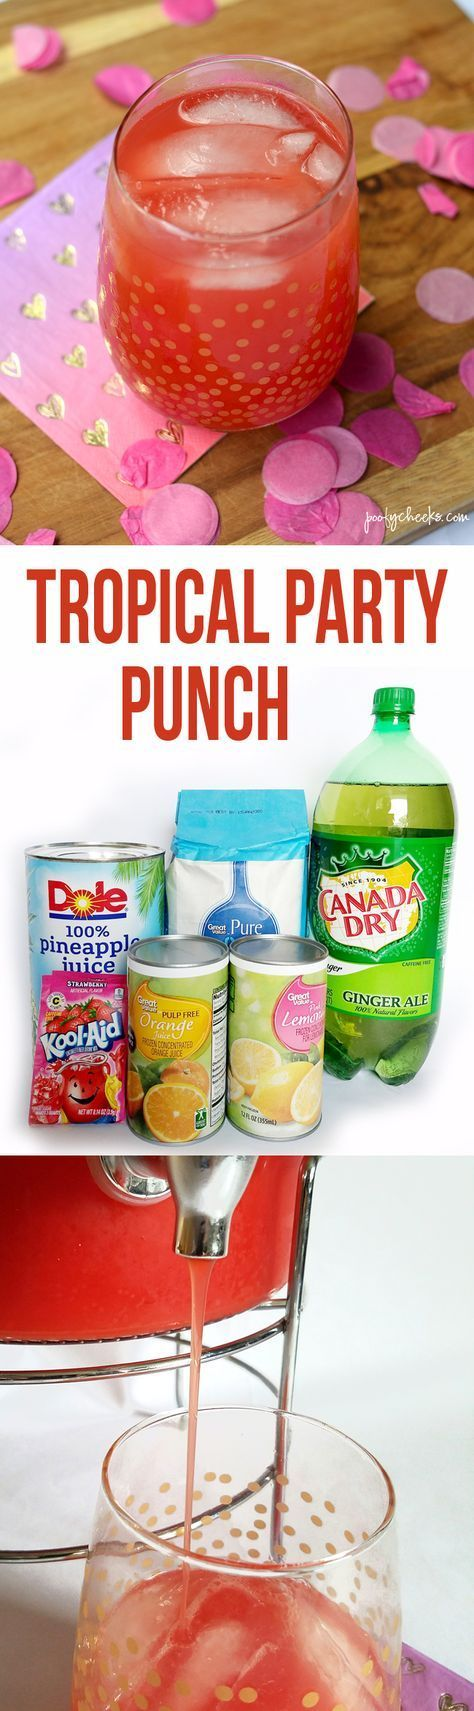 Tropical Party Punch Recipe #cocktaildrinks